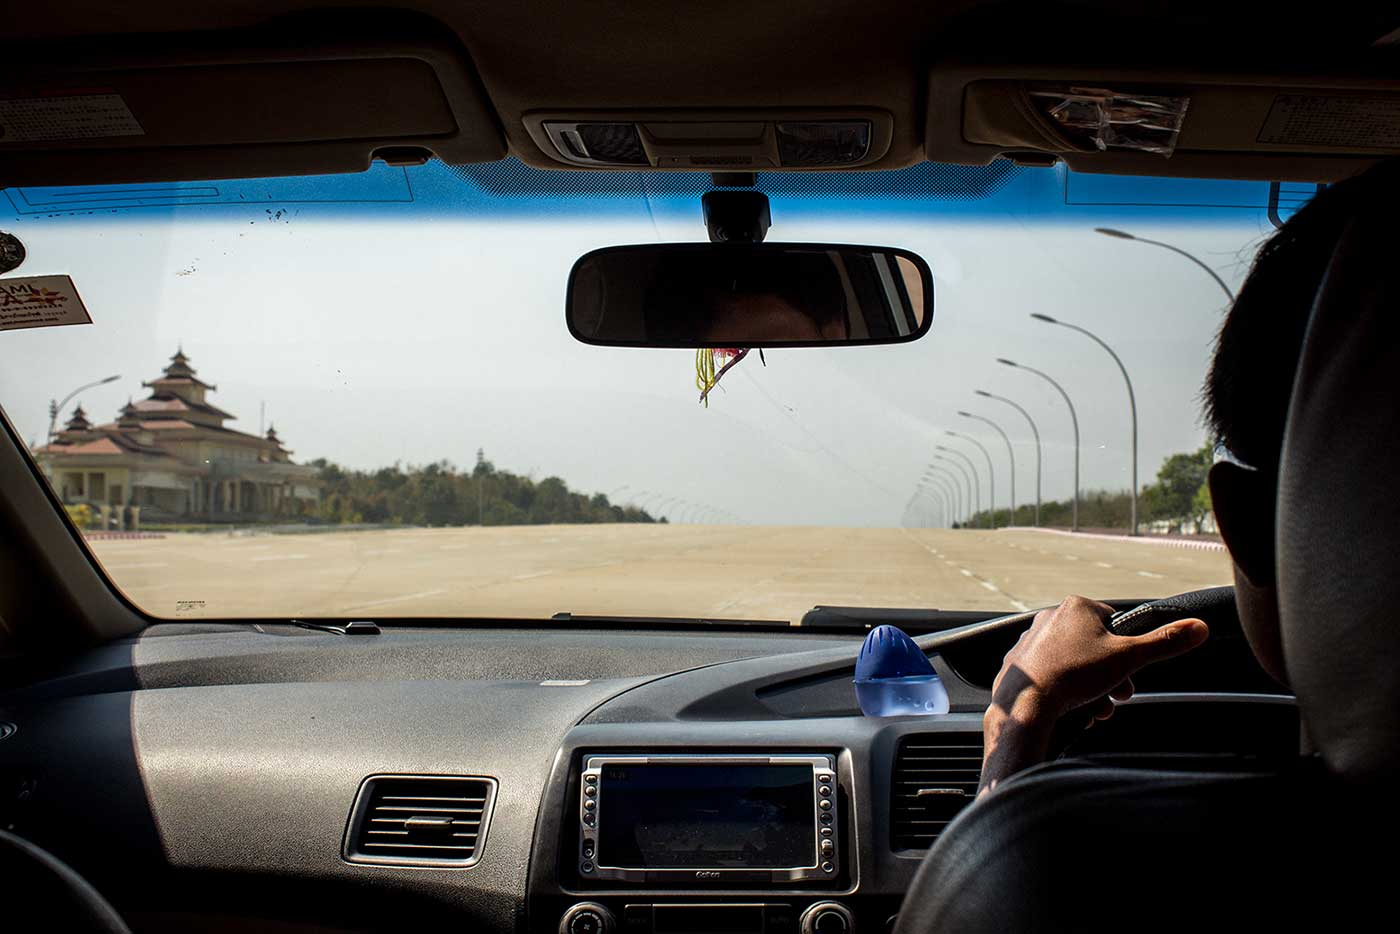 Driving into the Ministry Zone on that massive, 20-lane highway. Naypyidaw, Myanmar.